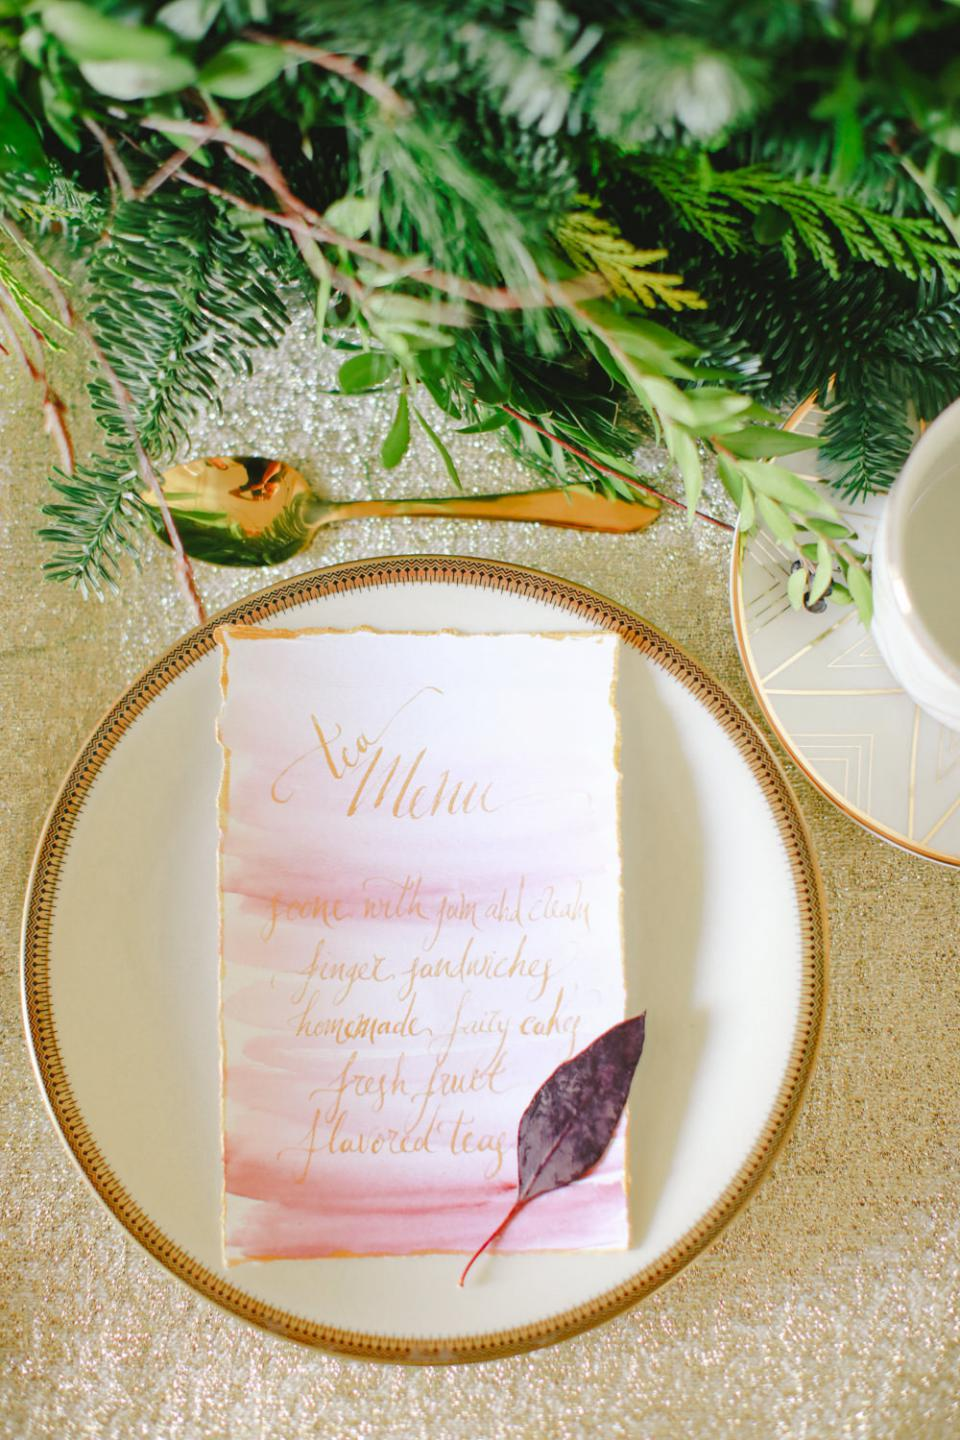 Christmas menu-calligraphy